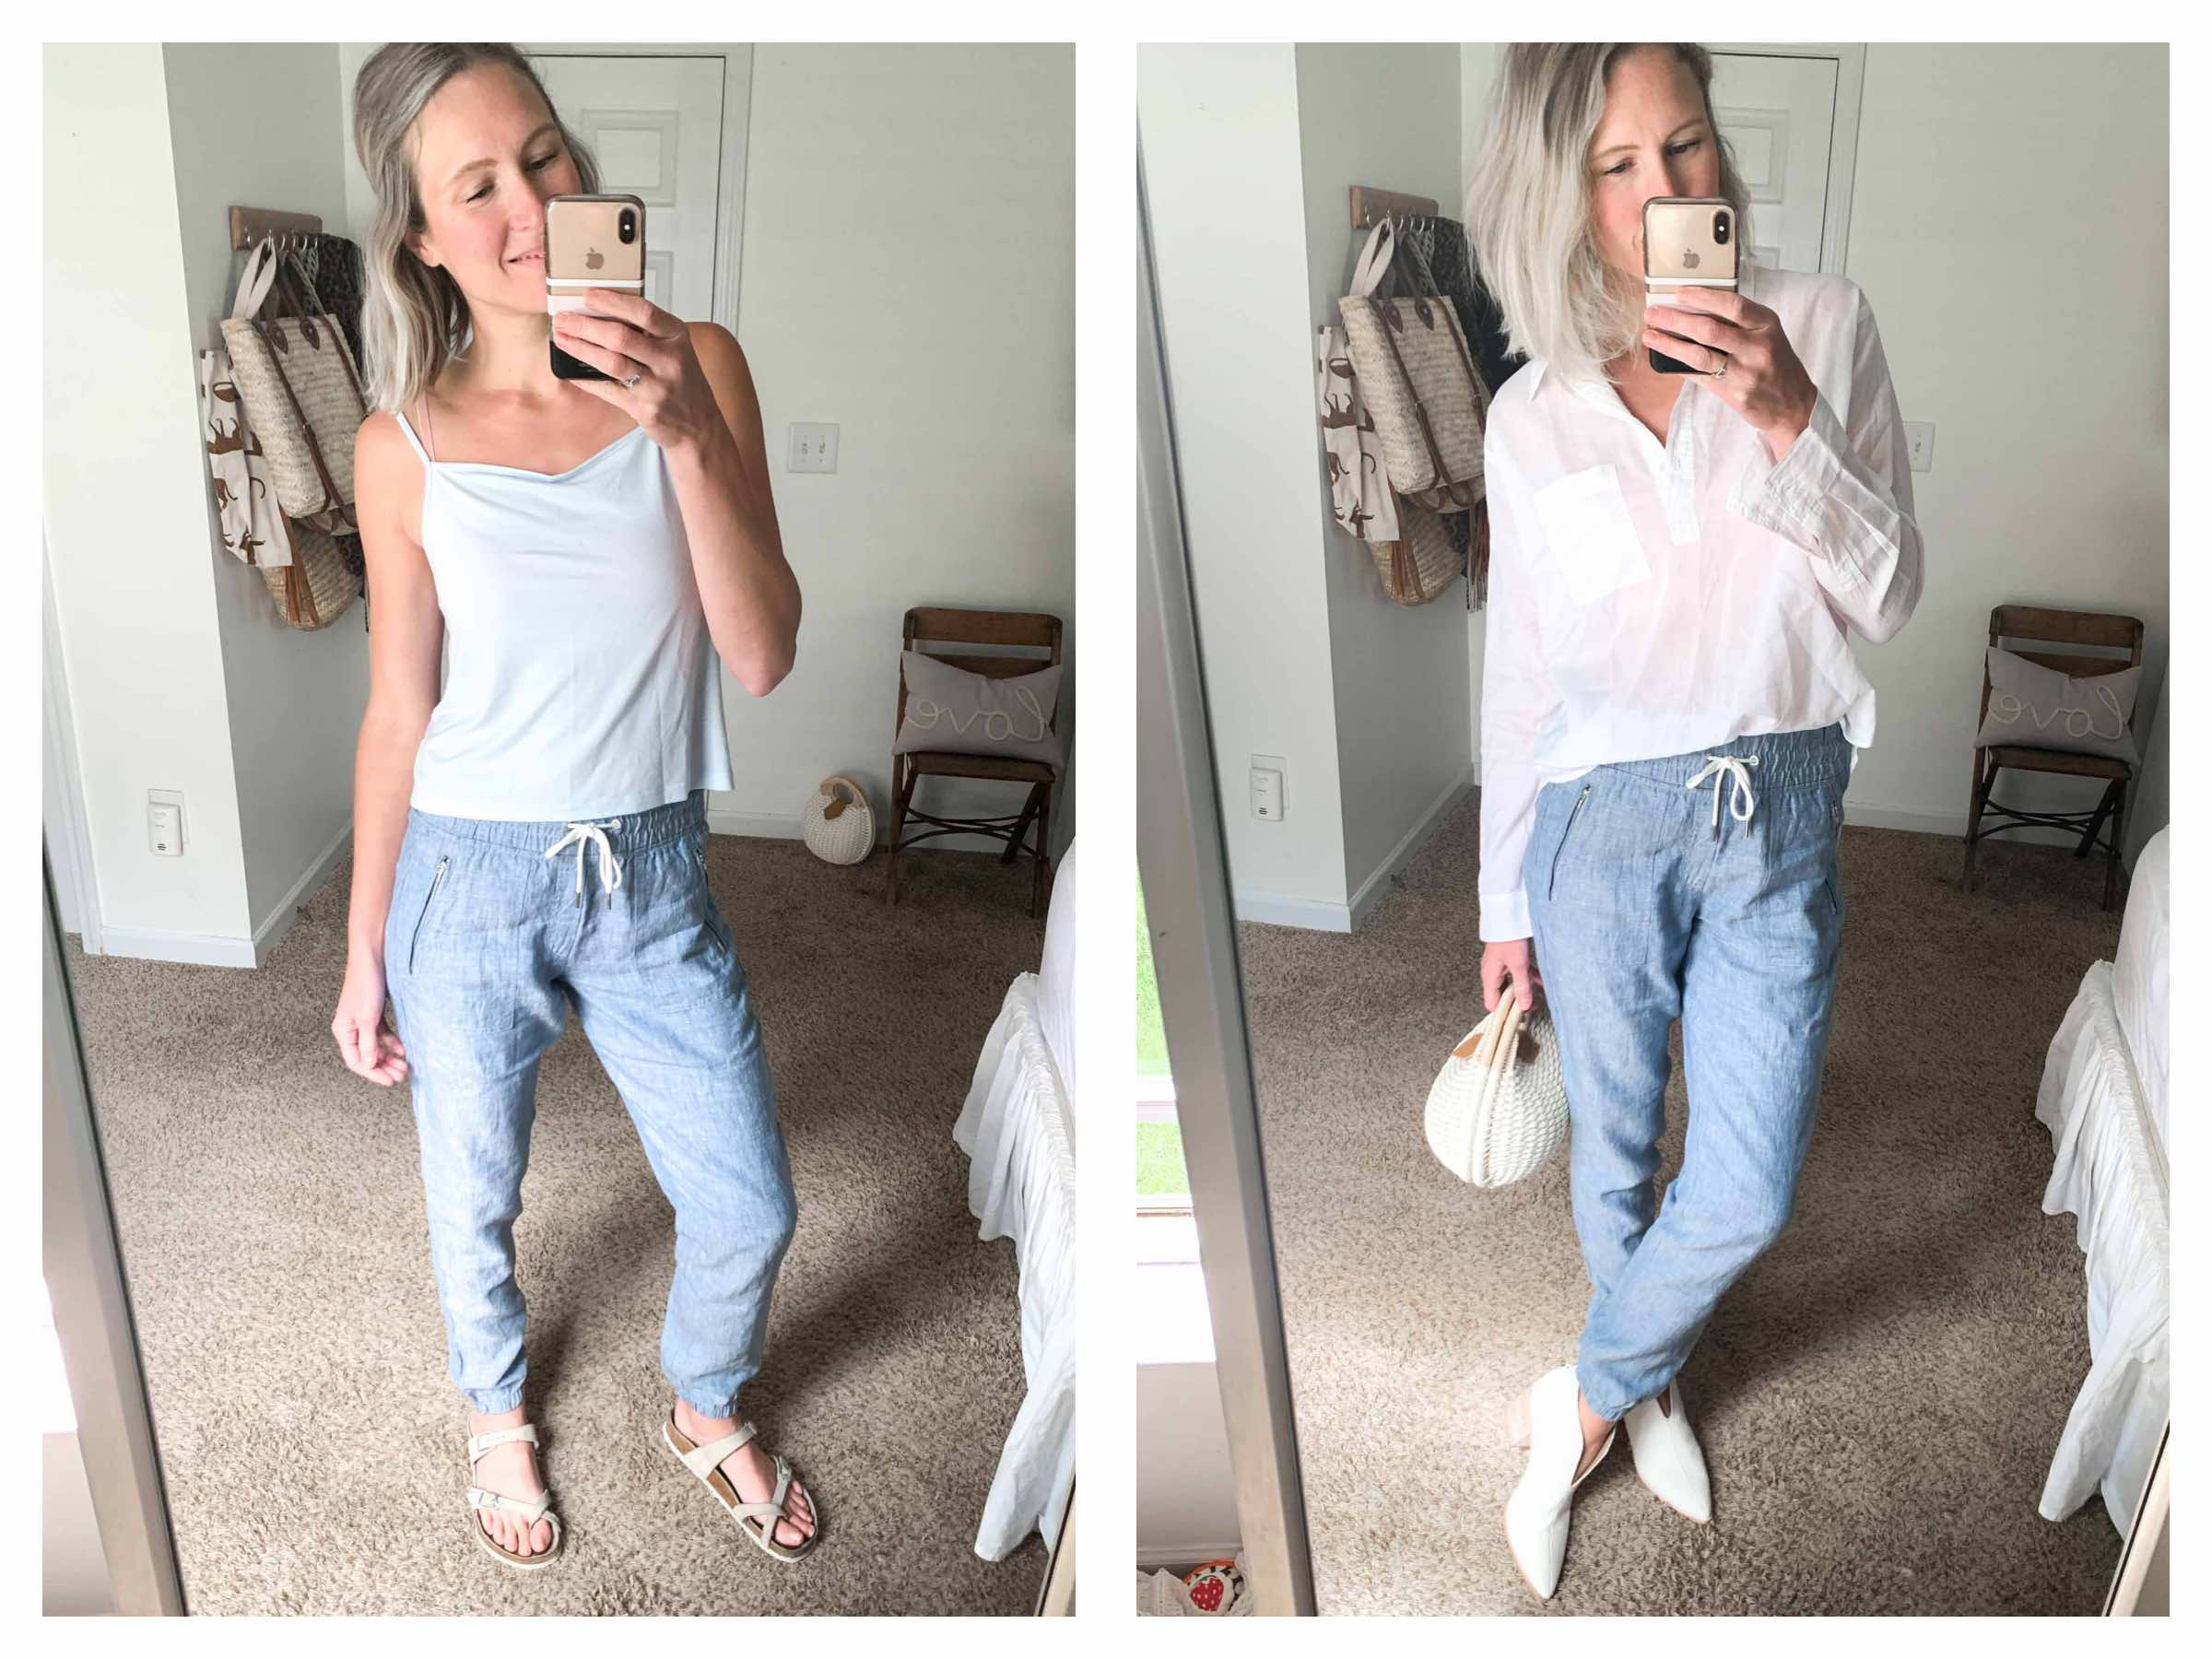 As something of a Panel of Experts On Elastic-Waist Pants, we're sharing the joggers, leggings & sweatpants we're wearing most during quarantine —styled 2 ways.